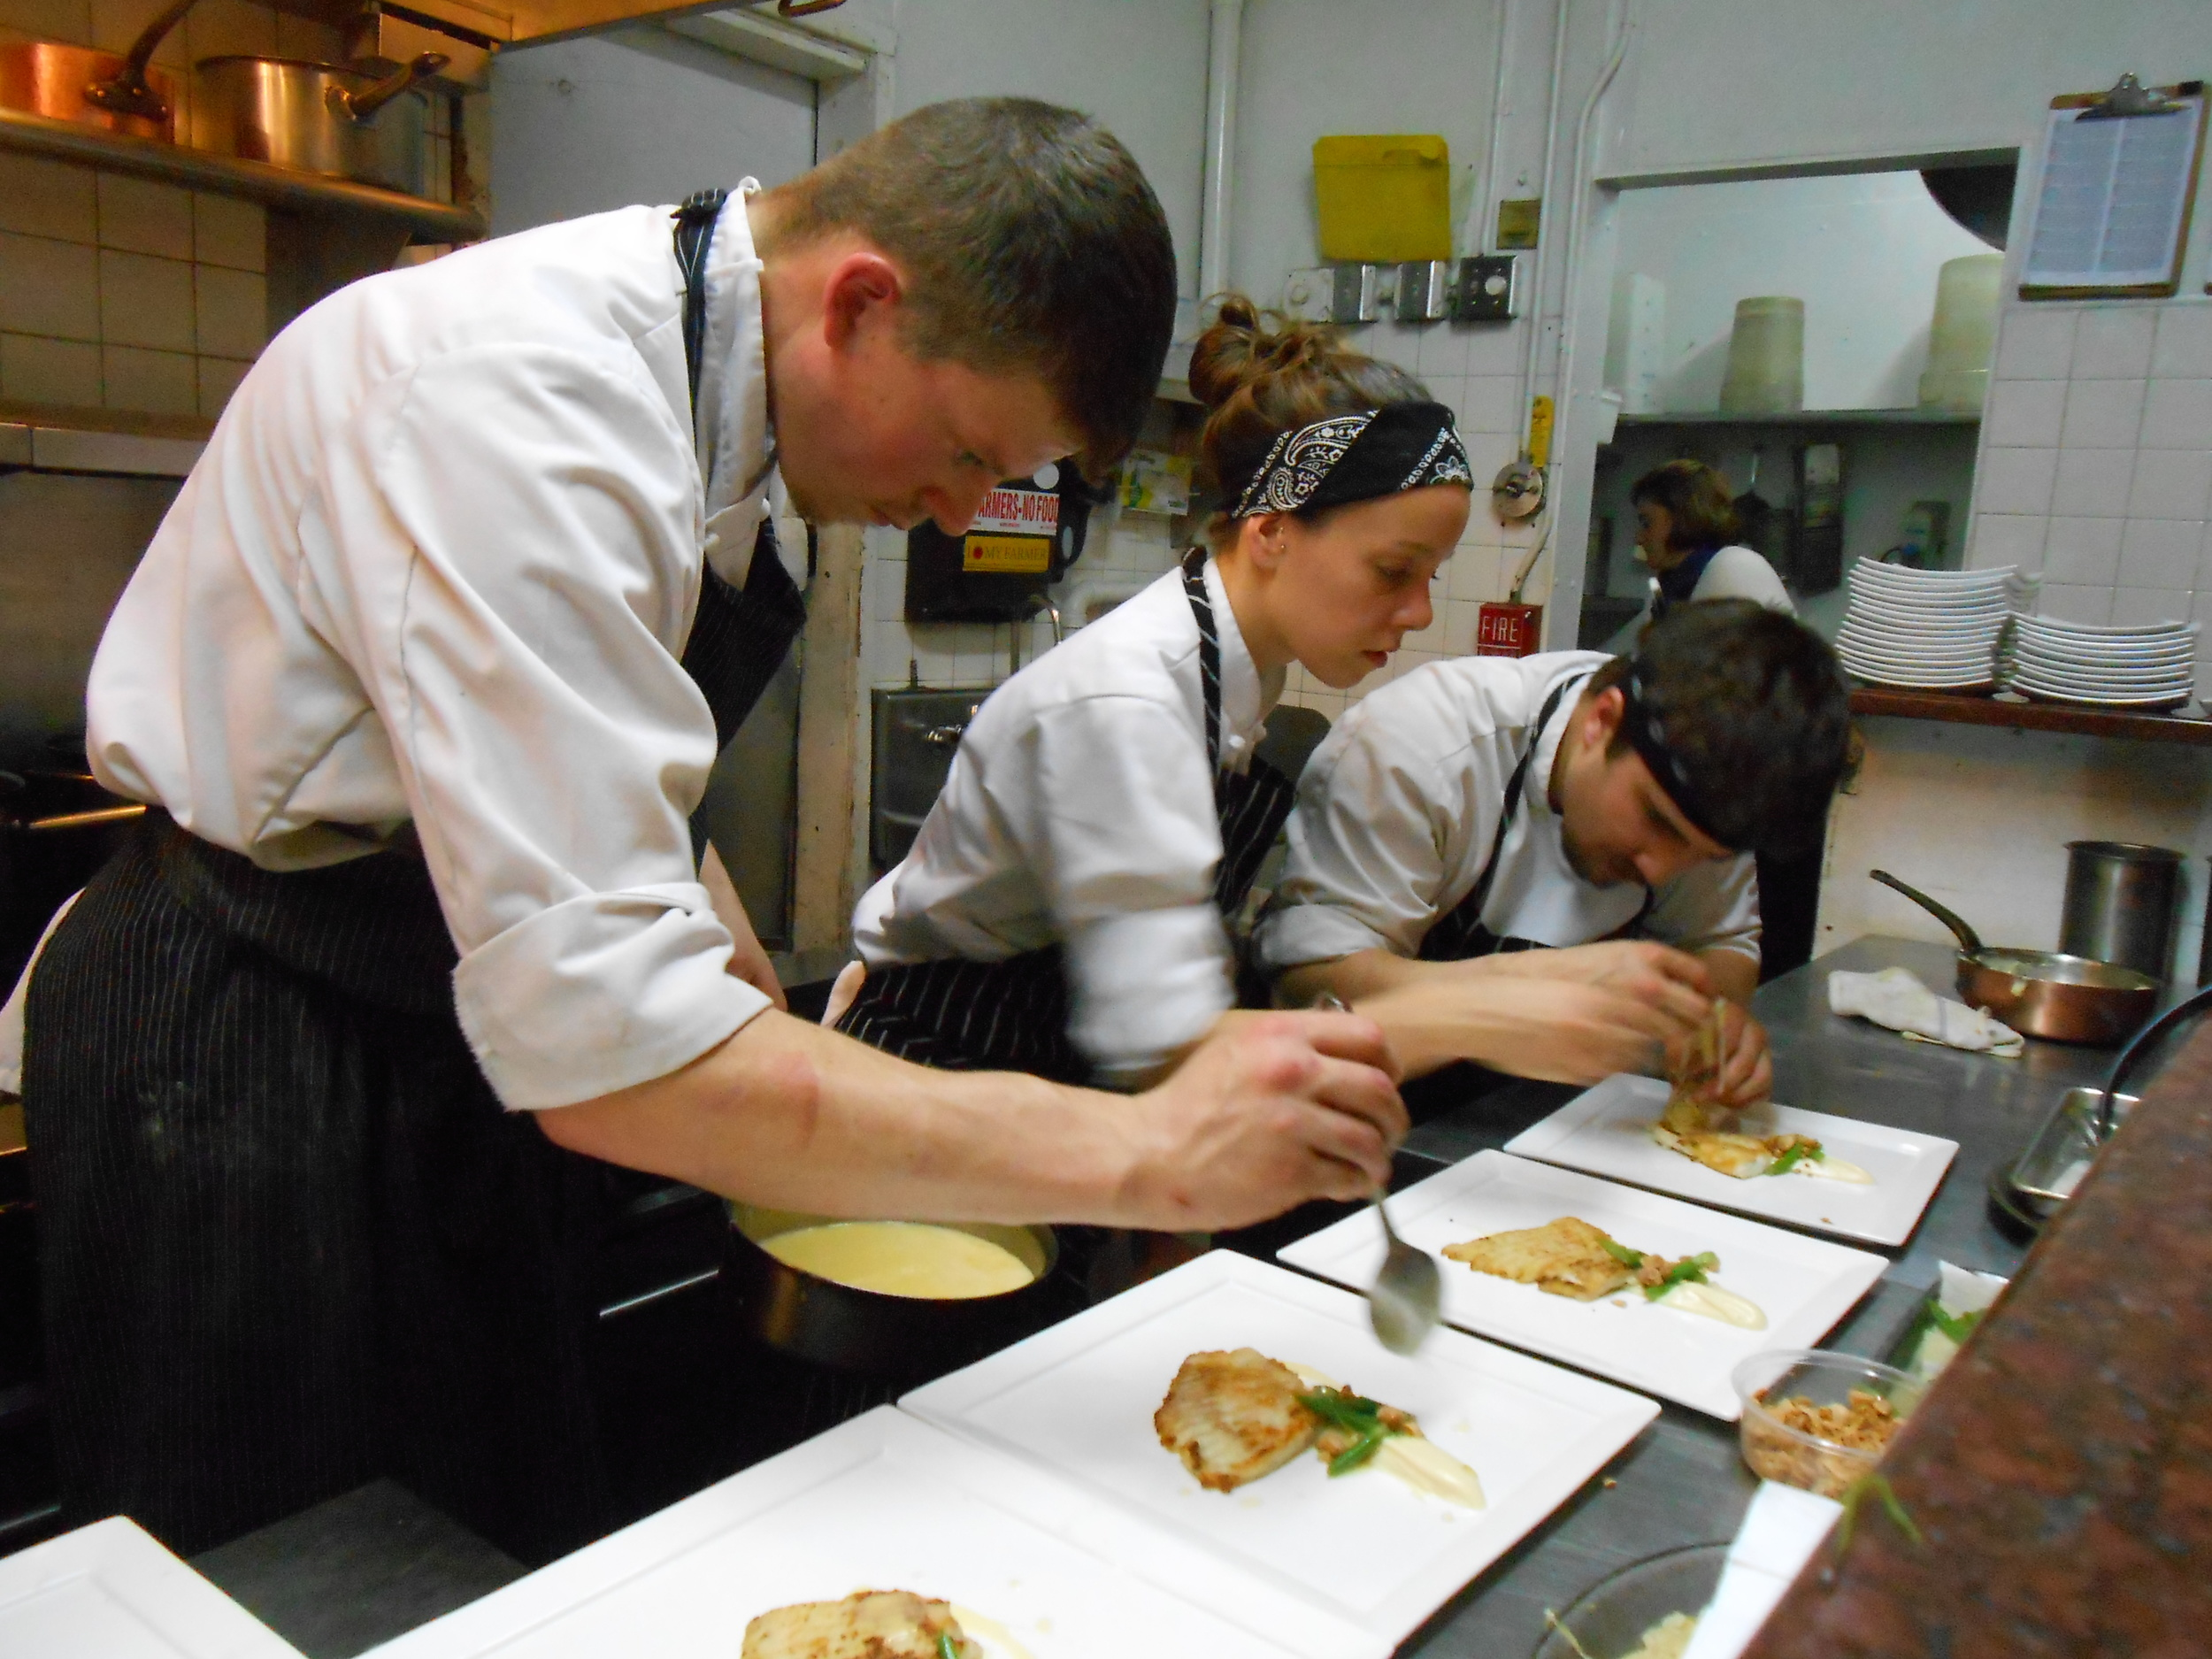 Plating the skate dish